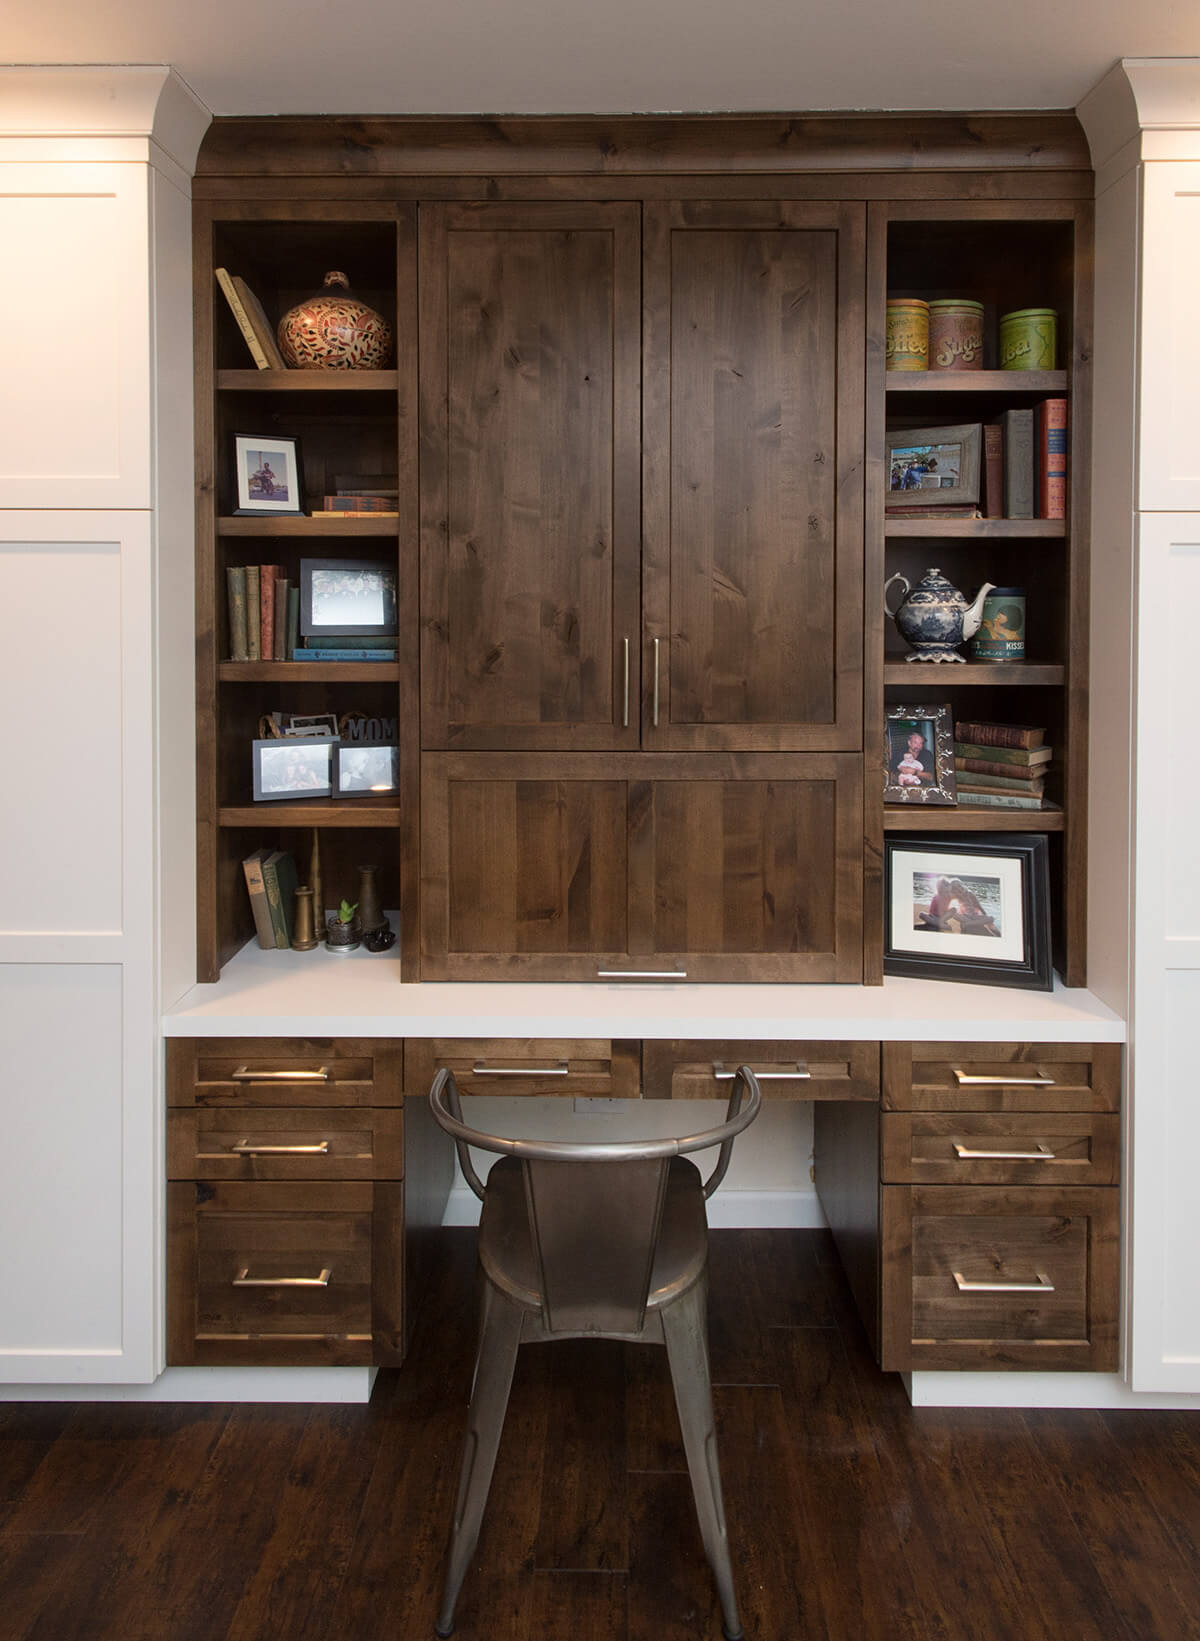 Dura Supreme Cabinetry kitchen and home office desk designed by Erin Havard of Modern Mountain Cabinetry & Co., California. Photography by Chantel Elder of Eleakis & Elder Photography.